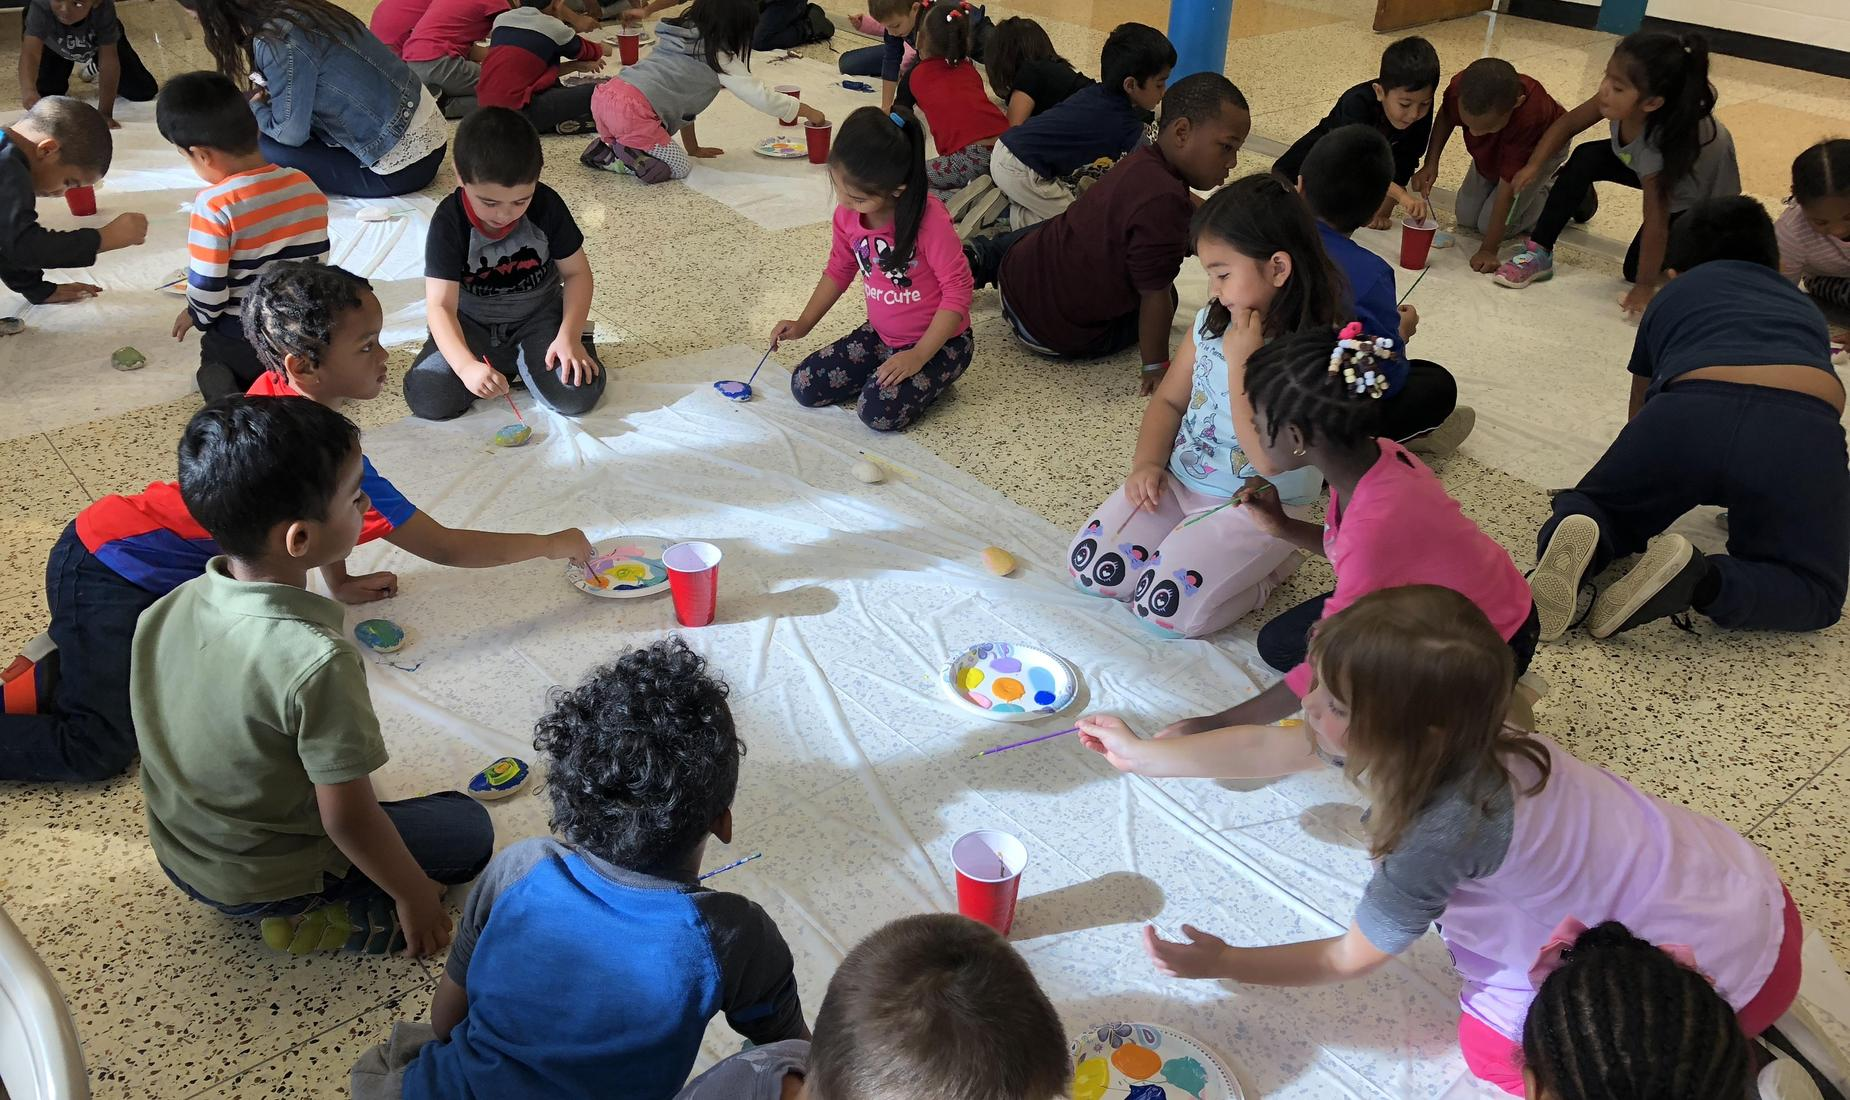 Rush students sitting on the floor painting rocks for their Rock Garden